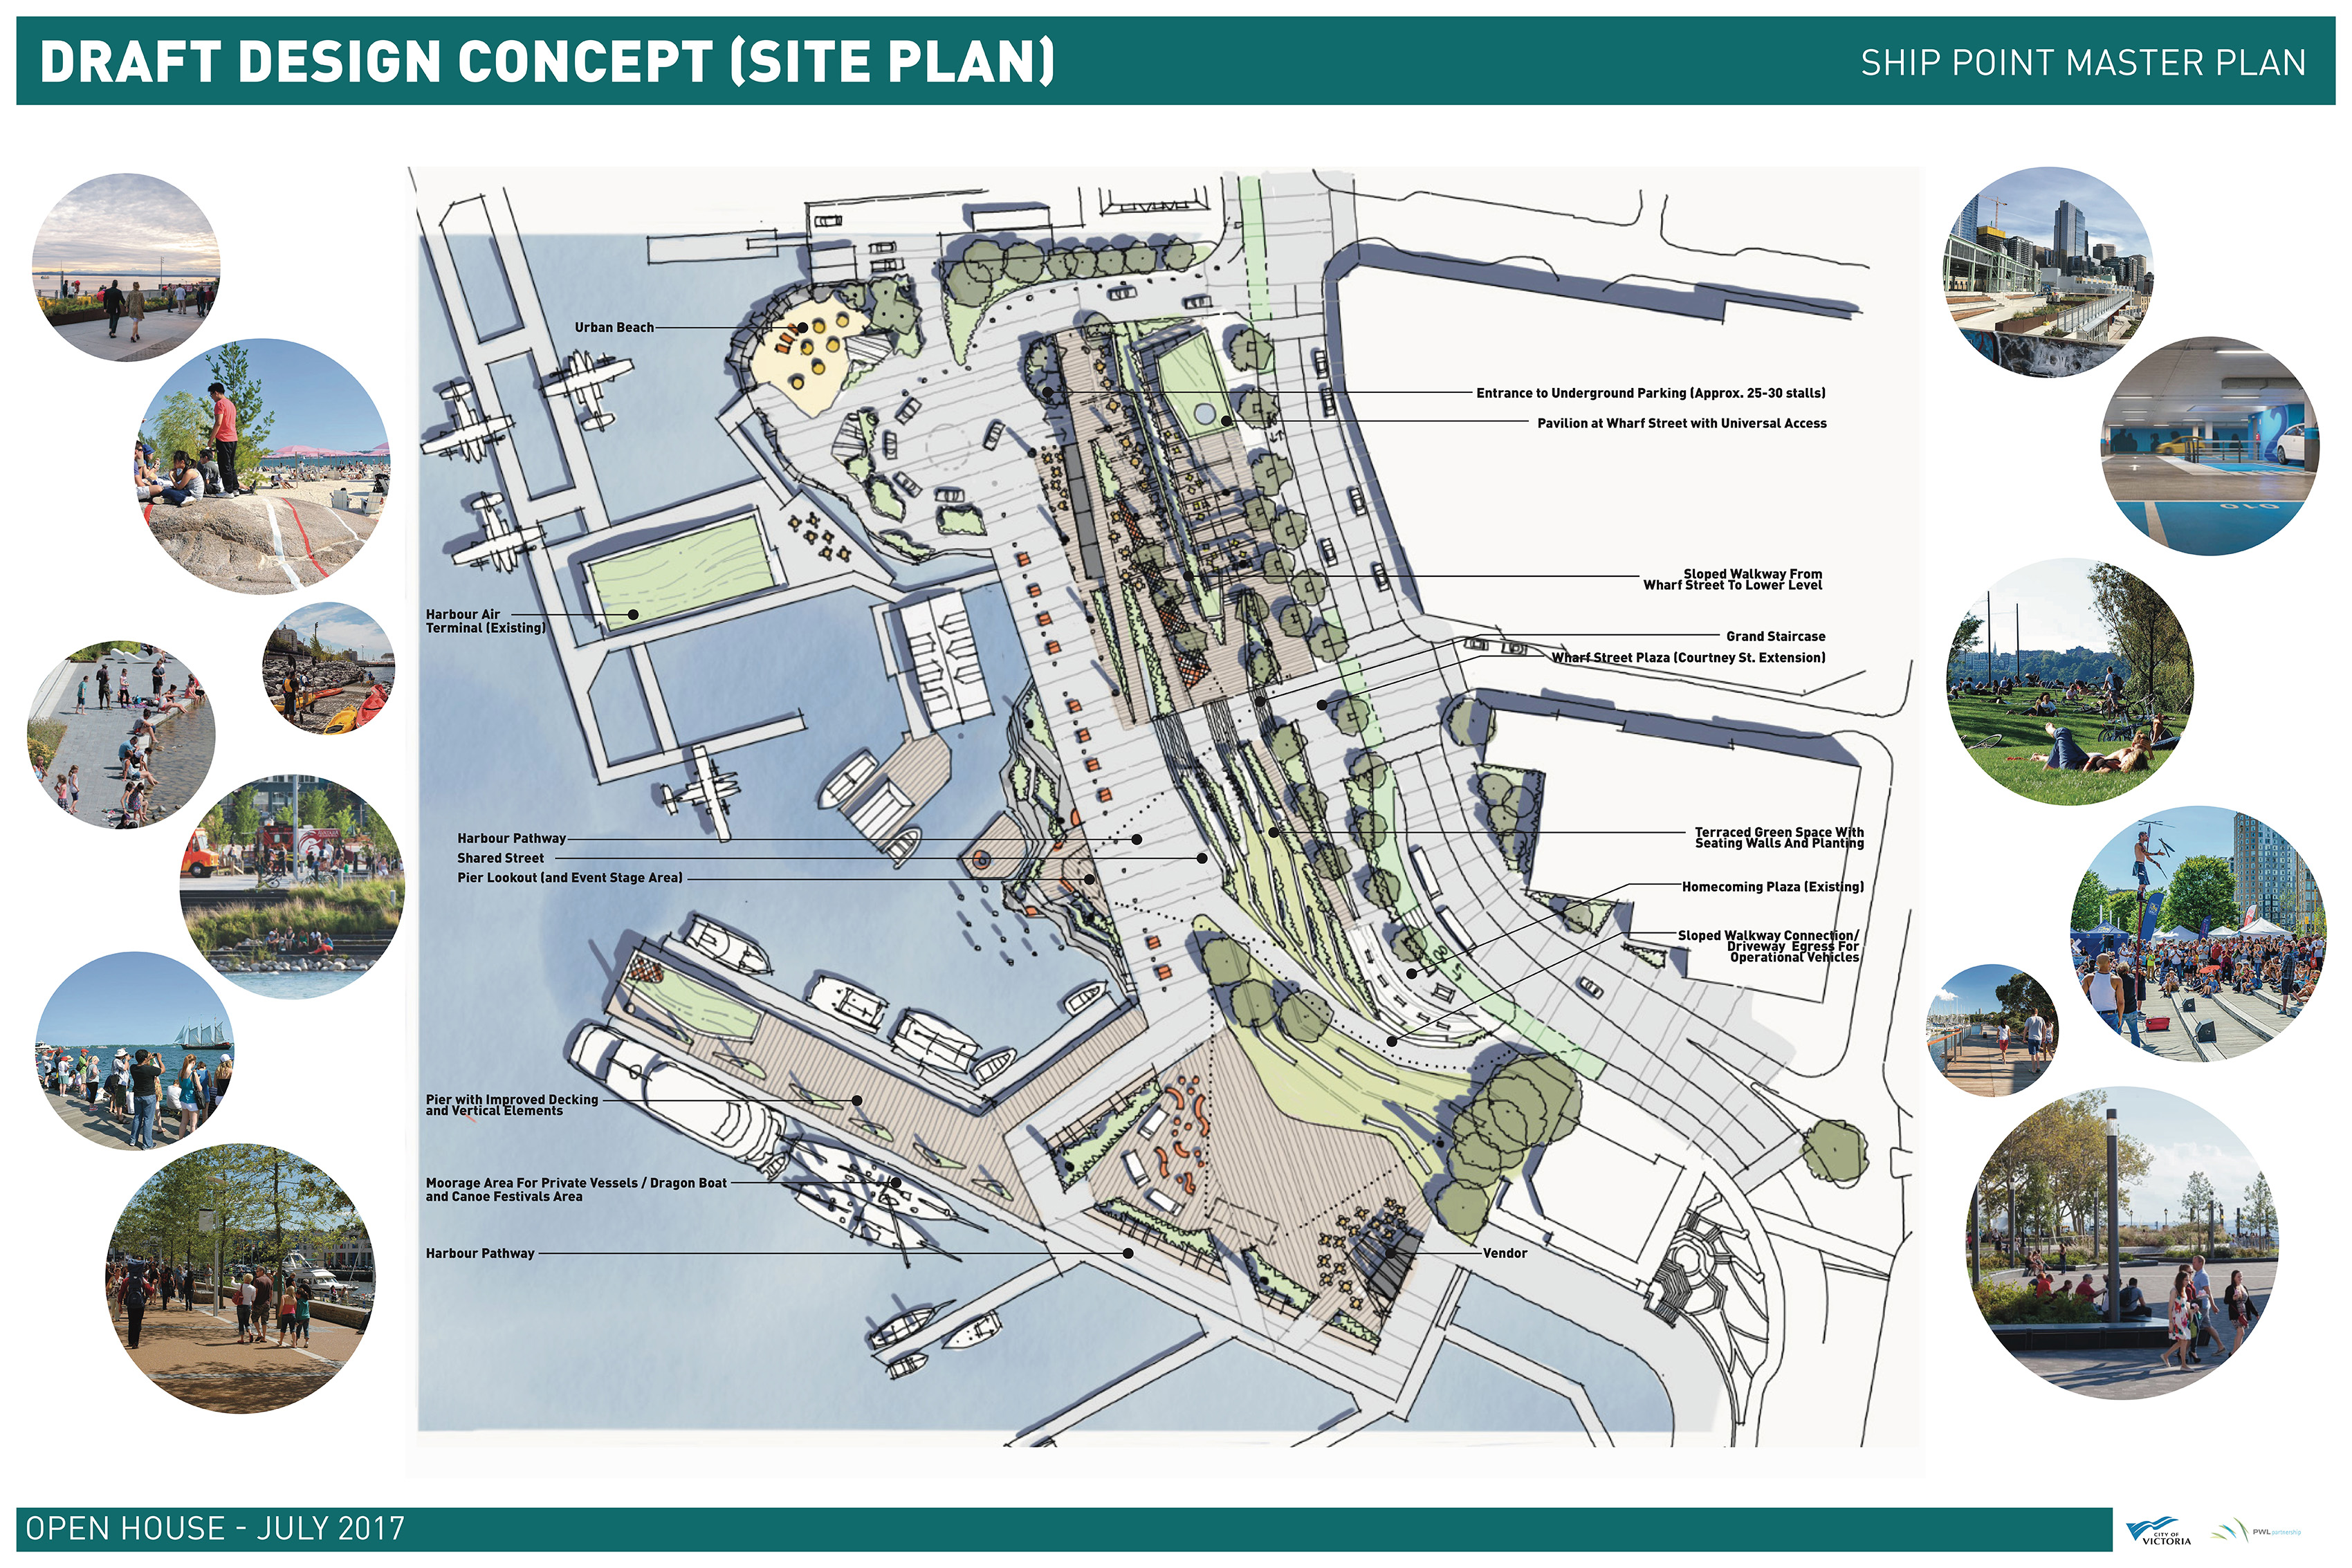 Ship point master plan victoria - Planning and design of airports pdf ...